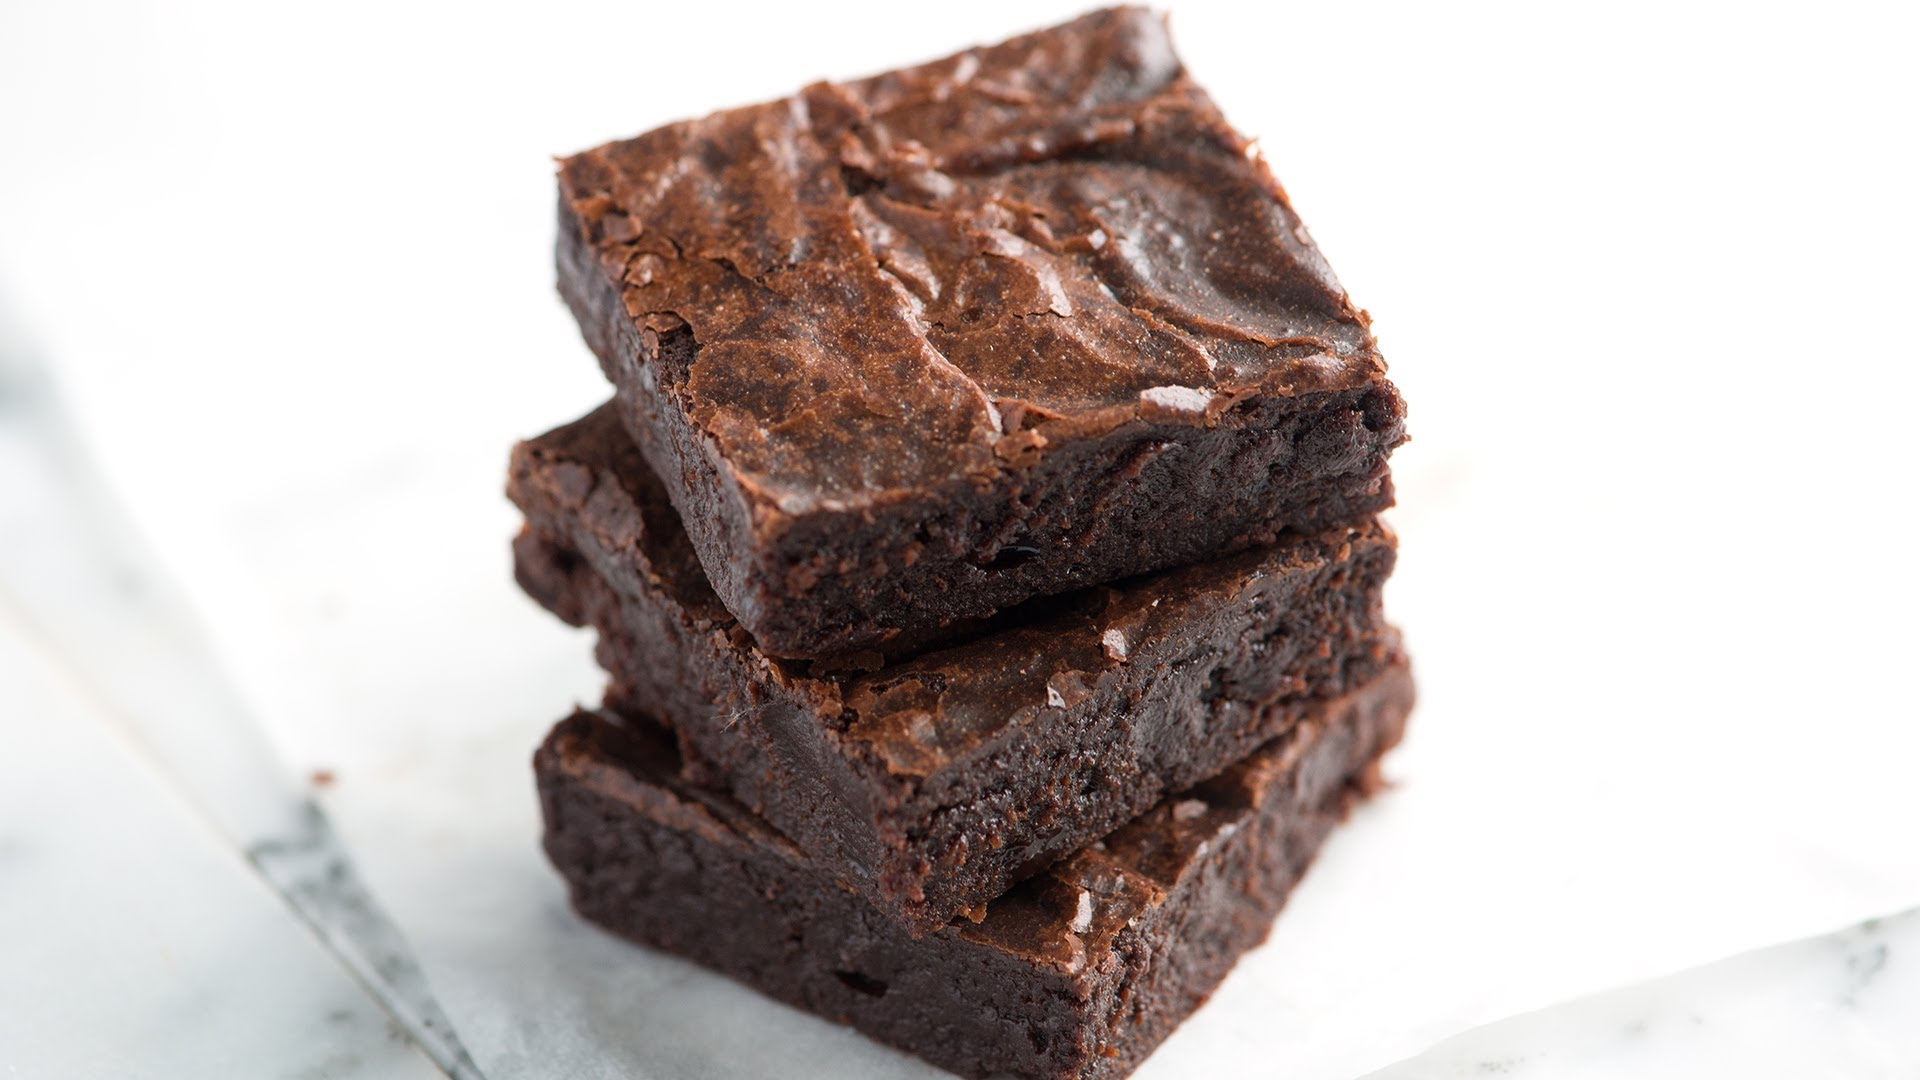 How to Make Brownies from Scratch - Easy Homemade Brownie Recipe